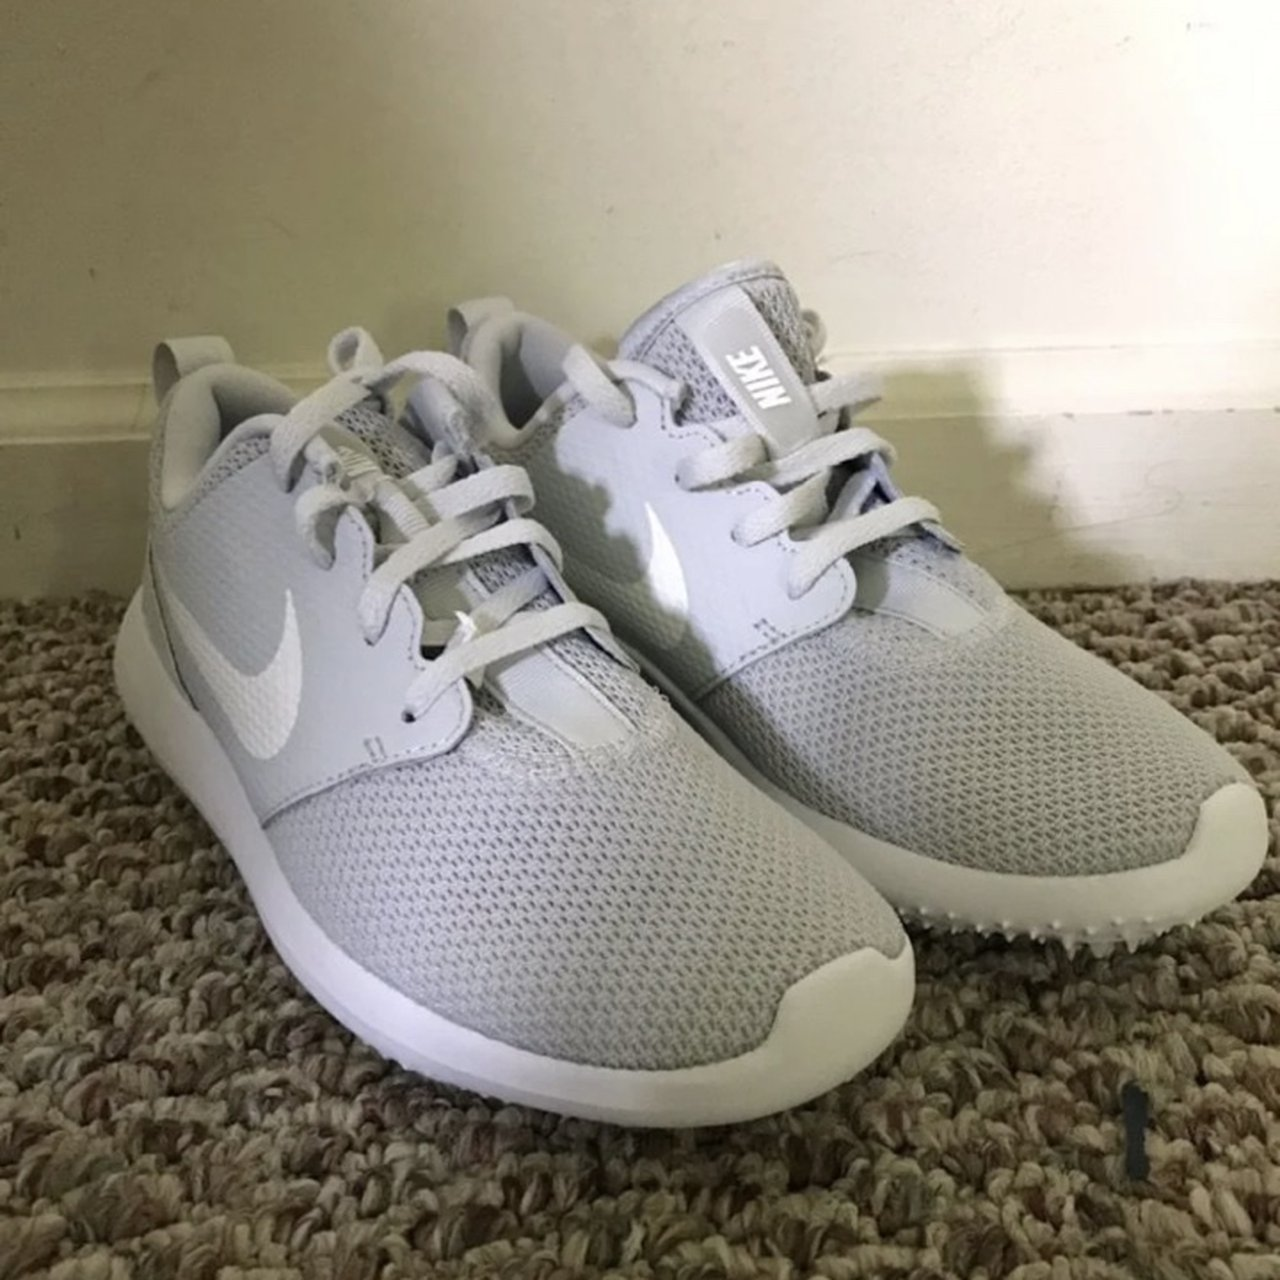 The Nike Roshe G Spikeless Golf Shoe Features A Depop